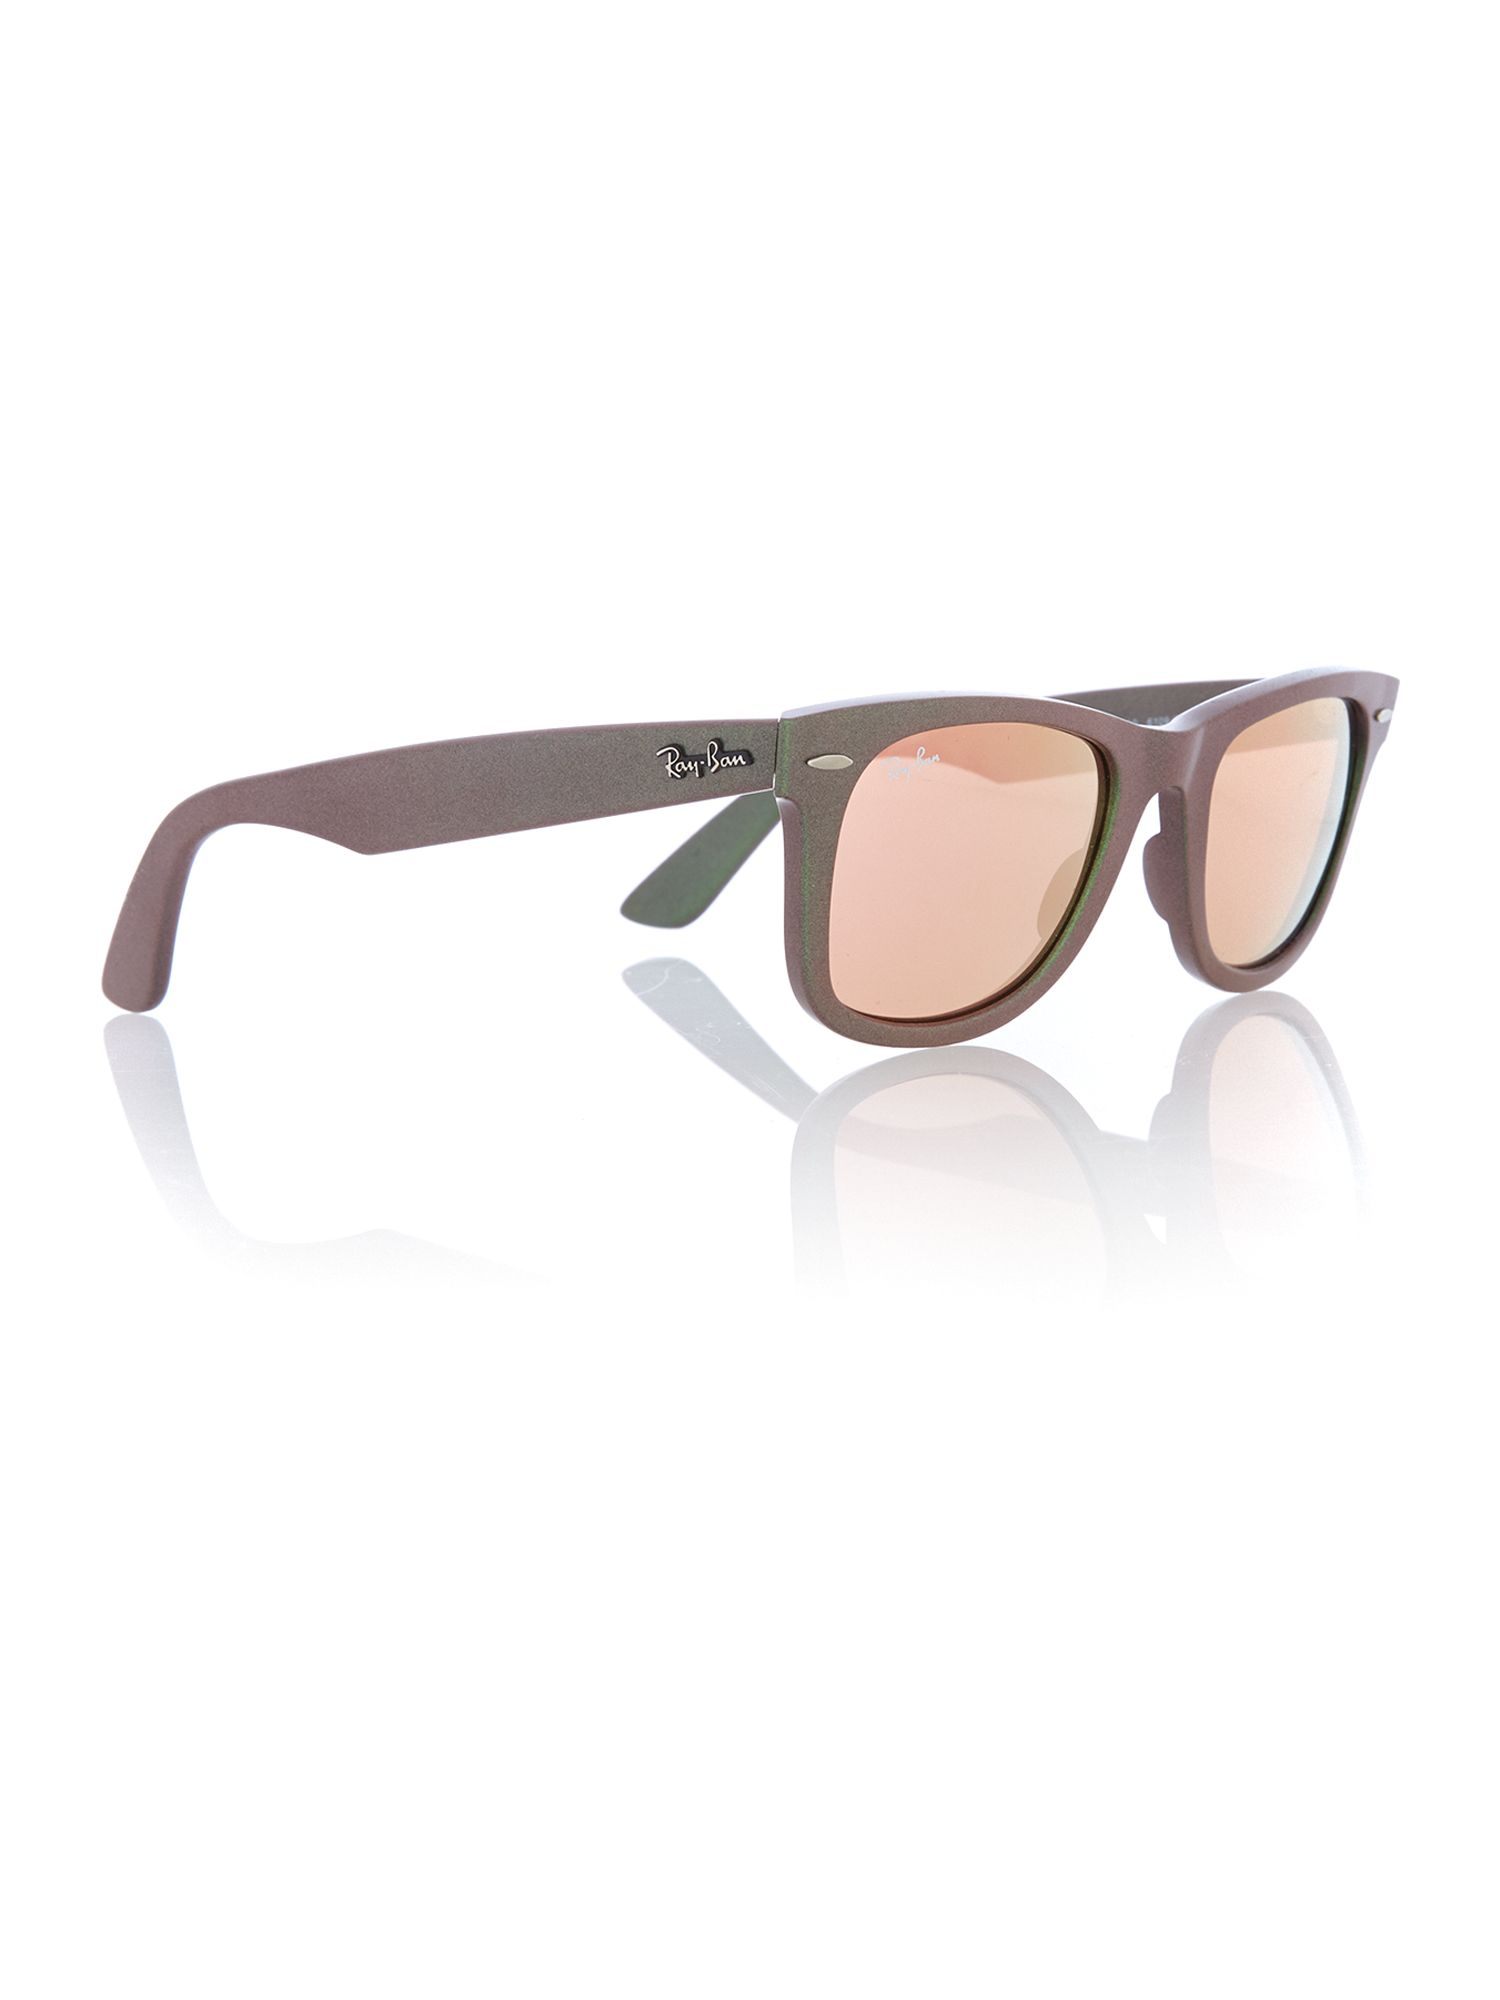 Unisex light brown mirror pink squared sunglasses